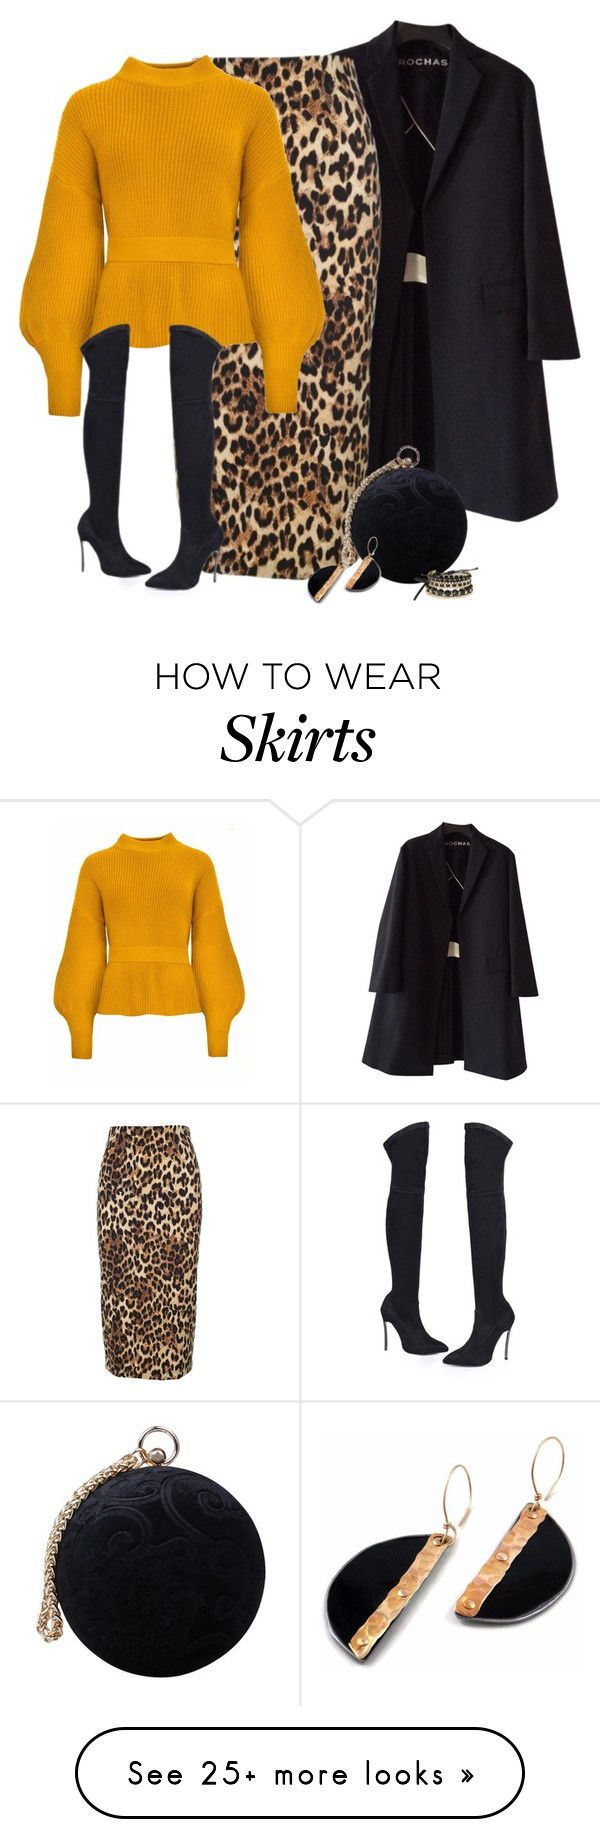 """Leopard Skirt & Round Bag"" by majezy on Polyvore featuring Rochas, Alberto Biani, Carvela and Avon"